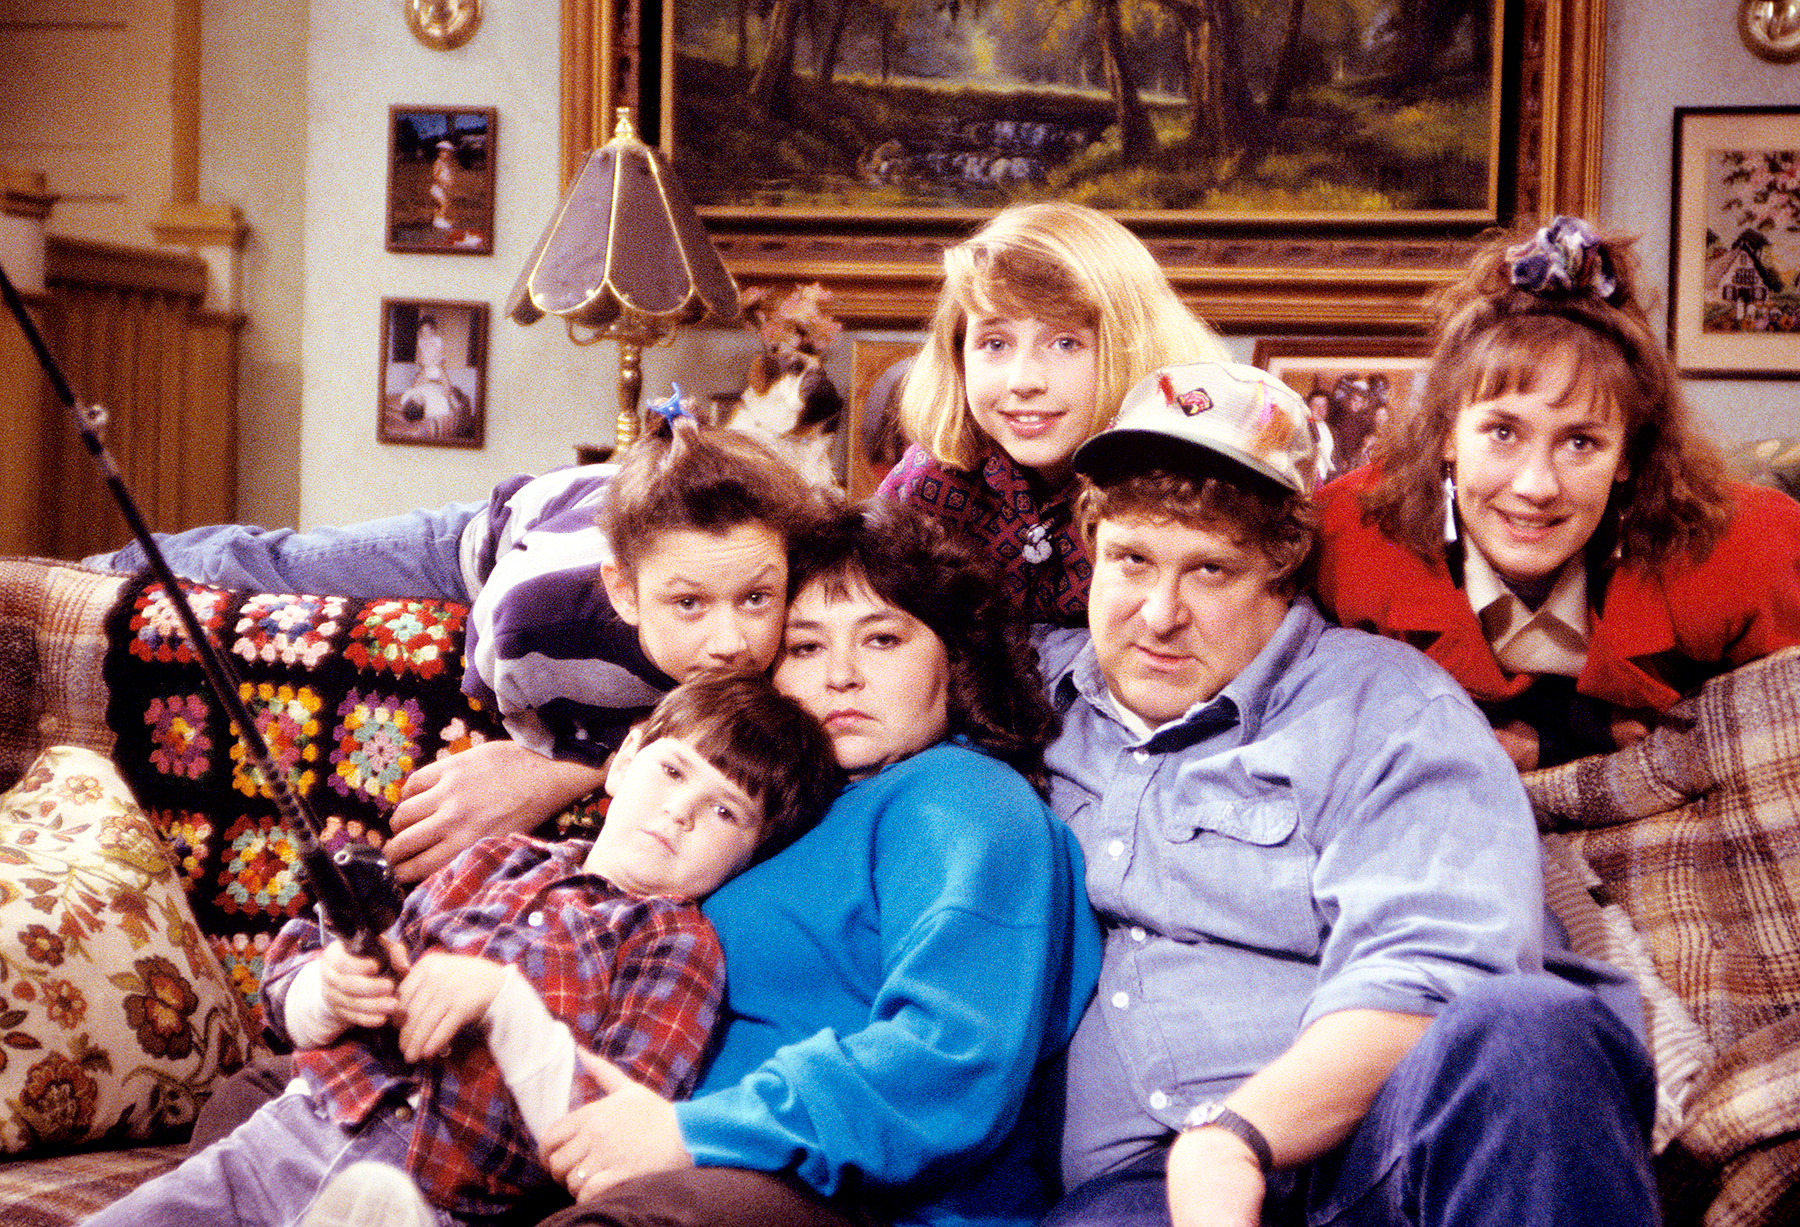 Michael Fishman, Sara Gilbert, Roseanne Barr, Alicia Goranson, John Goodman, and Laurie Metcalf on Roseanne.